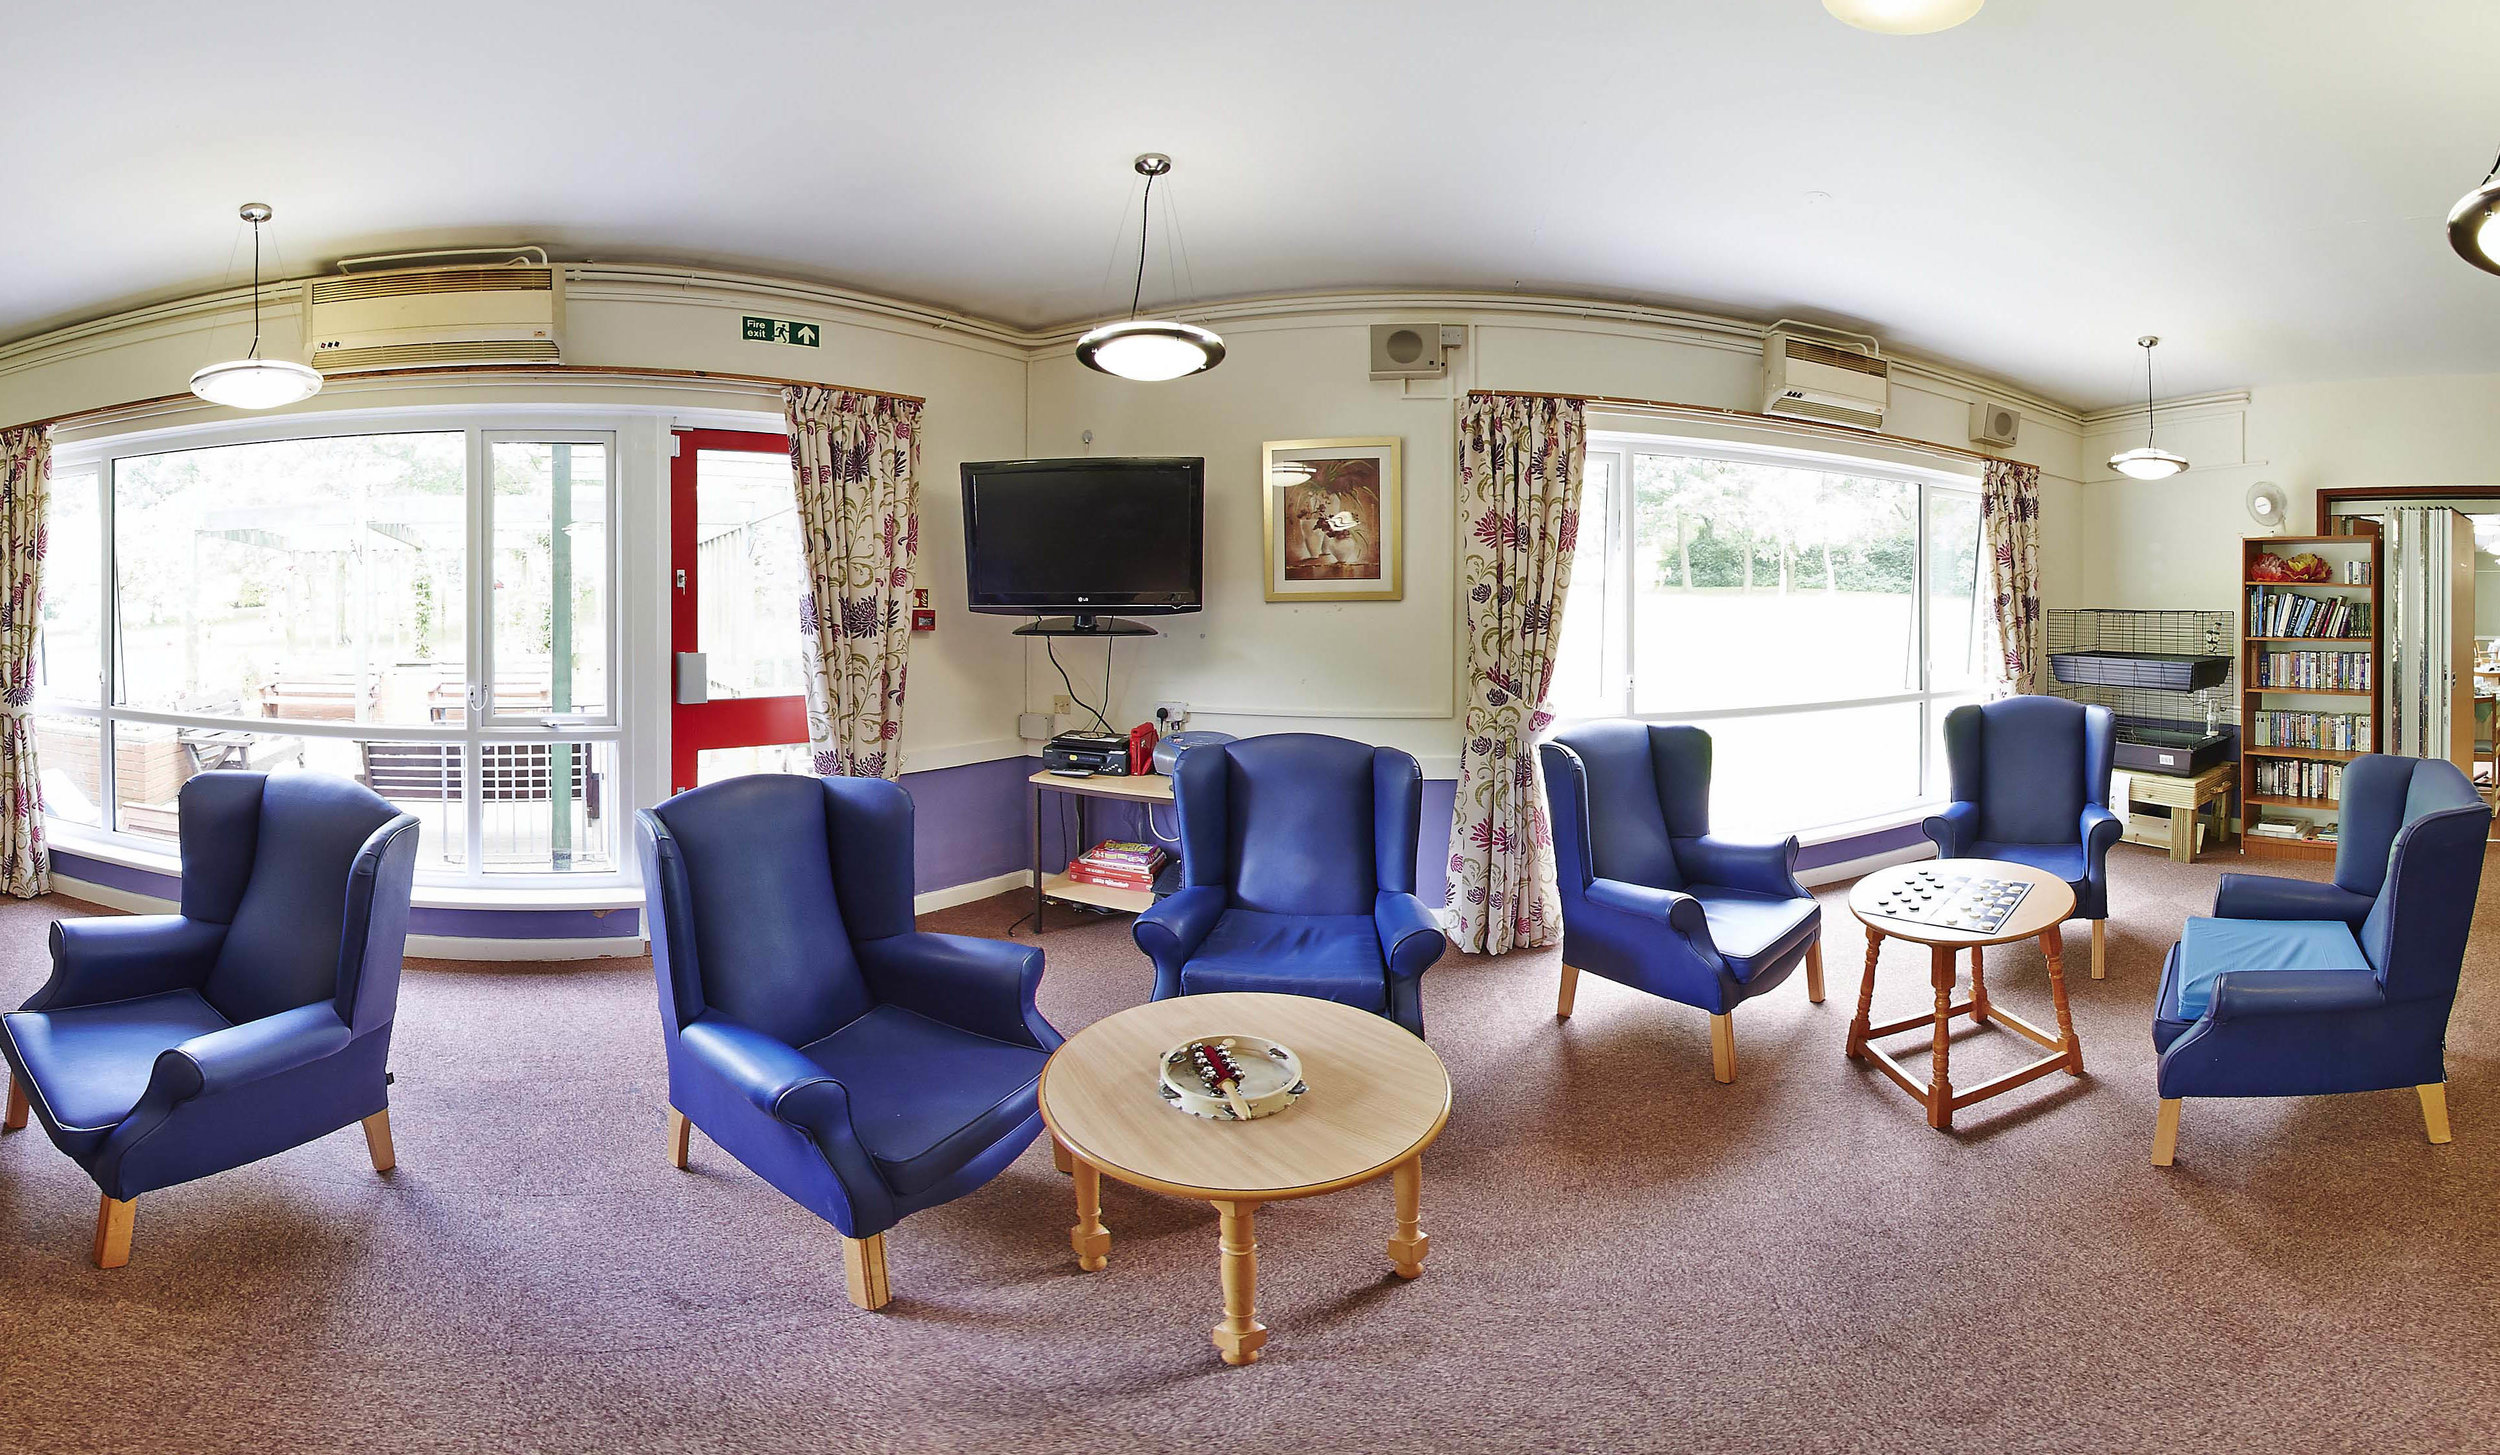 Selly wood house nursing home  This was a small tour to show a few rooms at a nursing home in Birmingham, the client only needed enough to give the viewer a better perspective on the home's layout and facilties, great for family members when having to decided on which care home to choose.